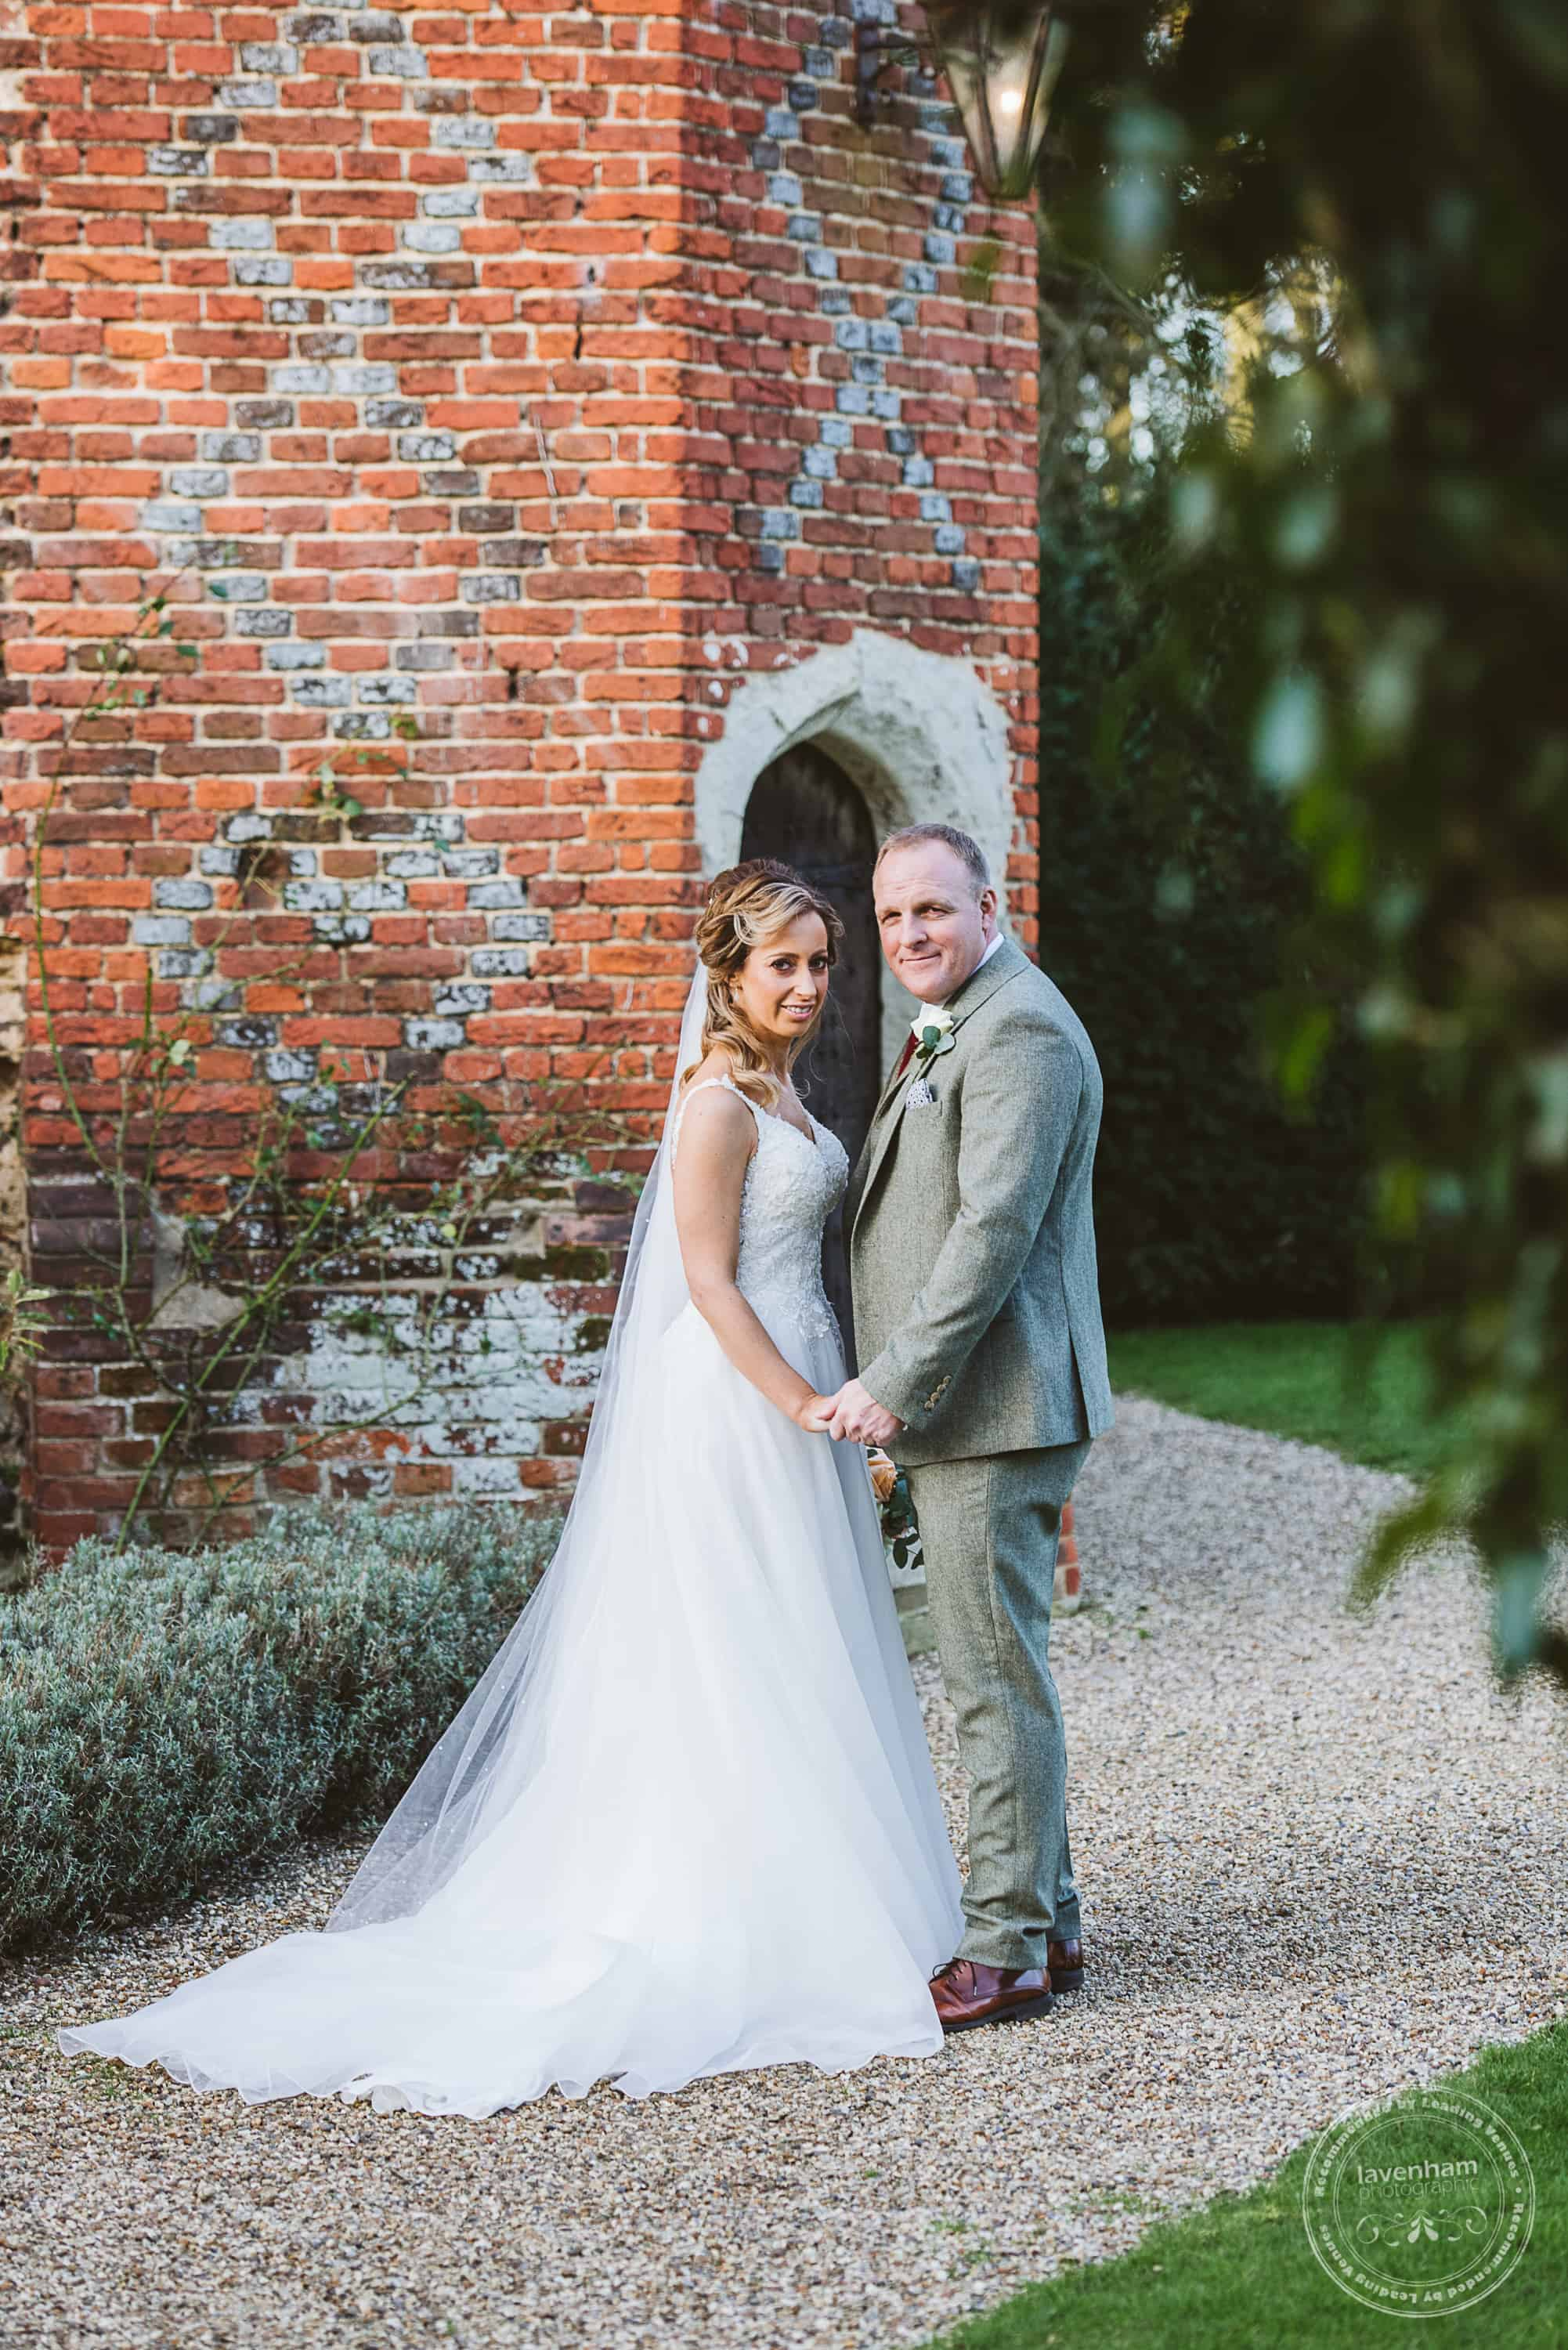 010220 Leez Priory Wedding Photographer 091